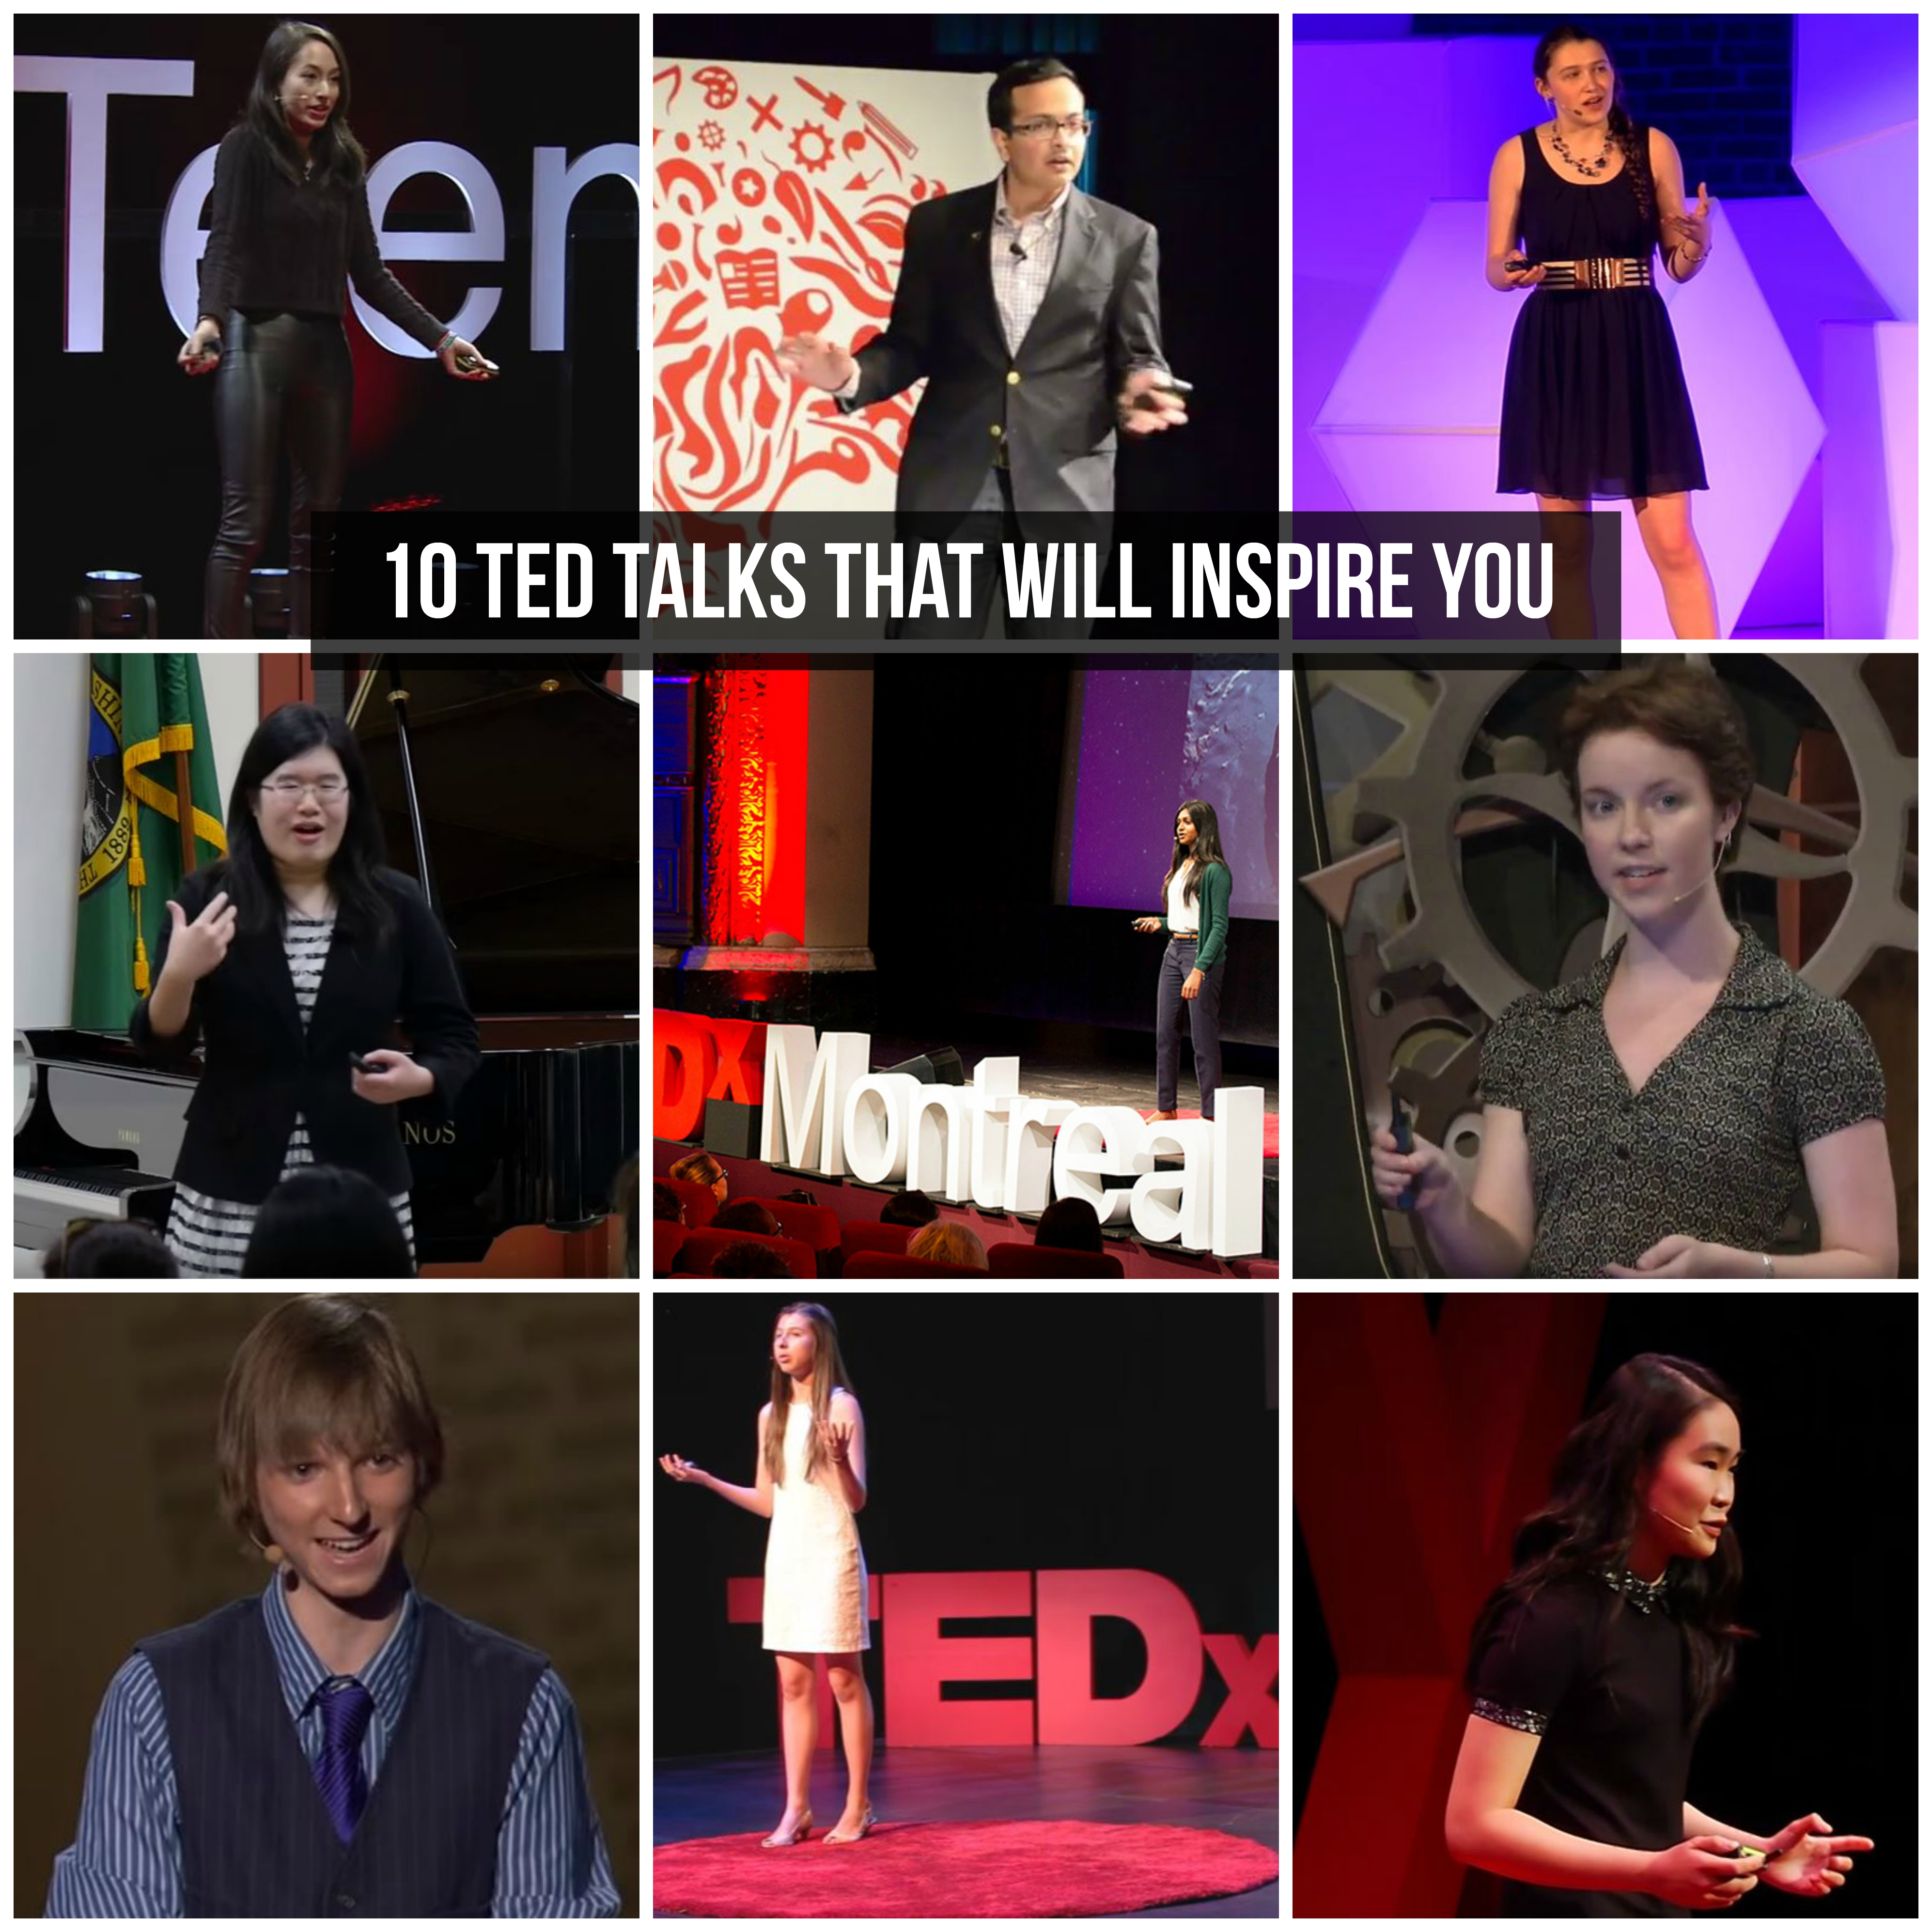 10 TED talks that will inspire you